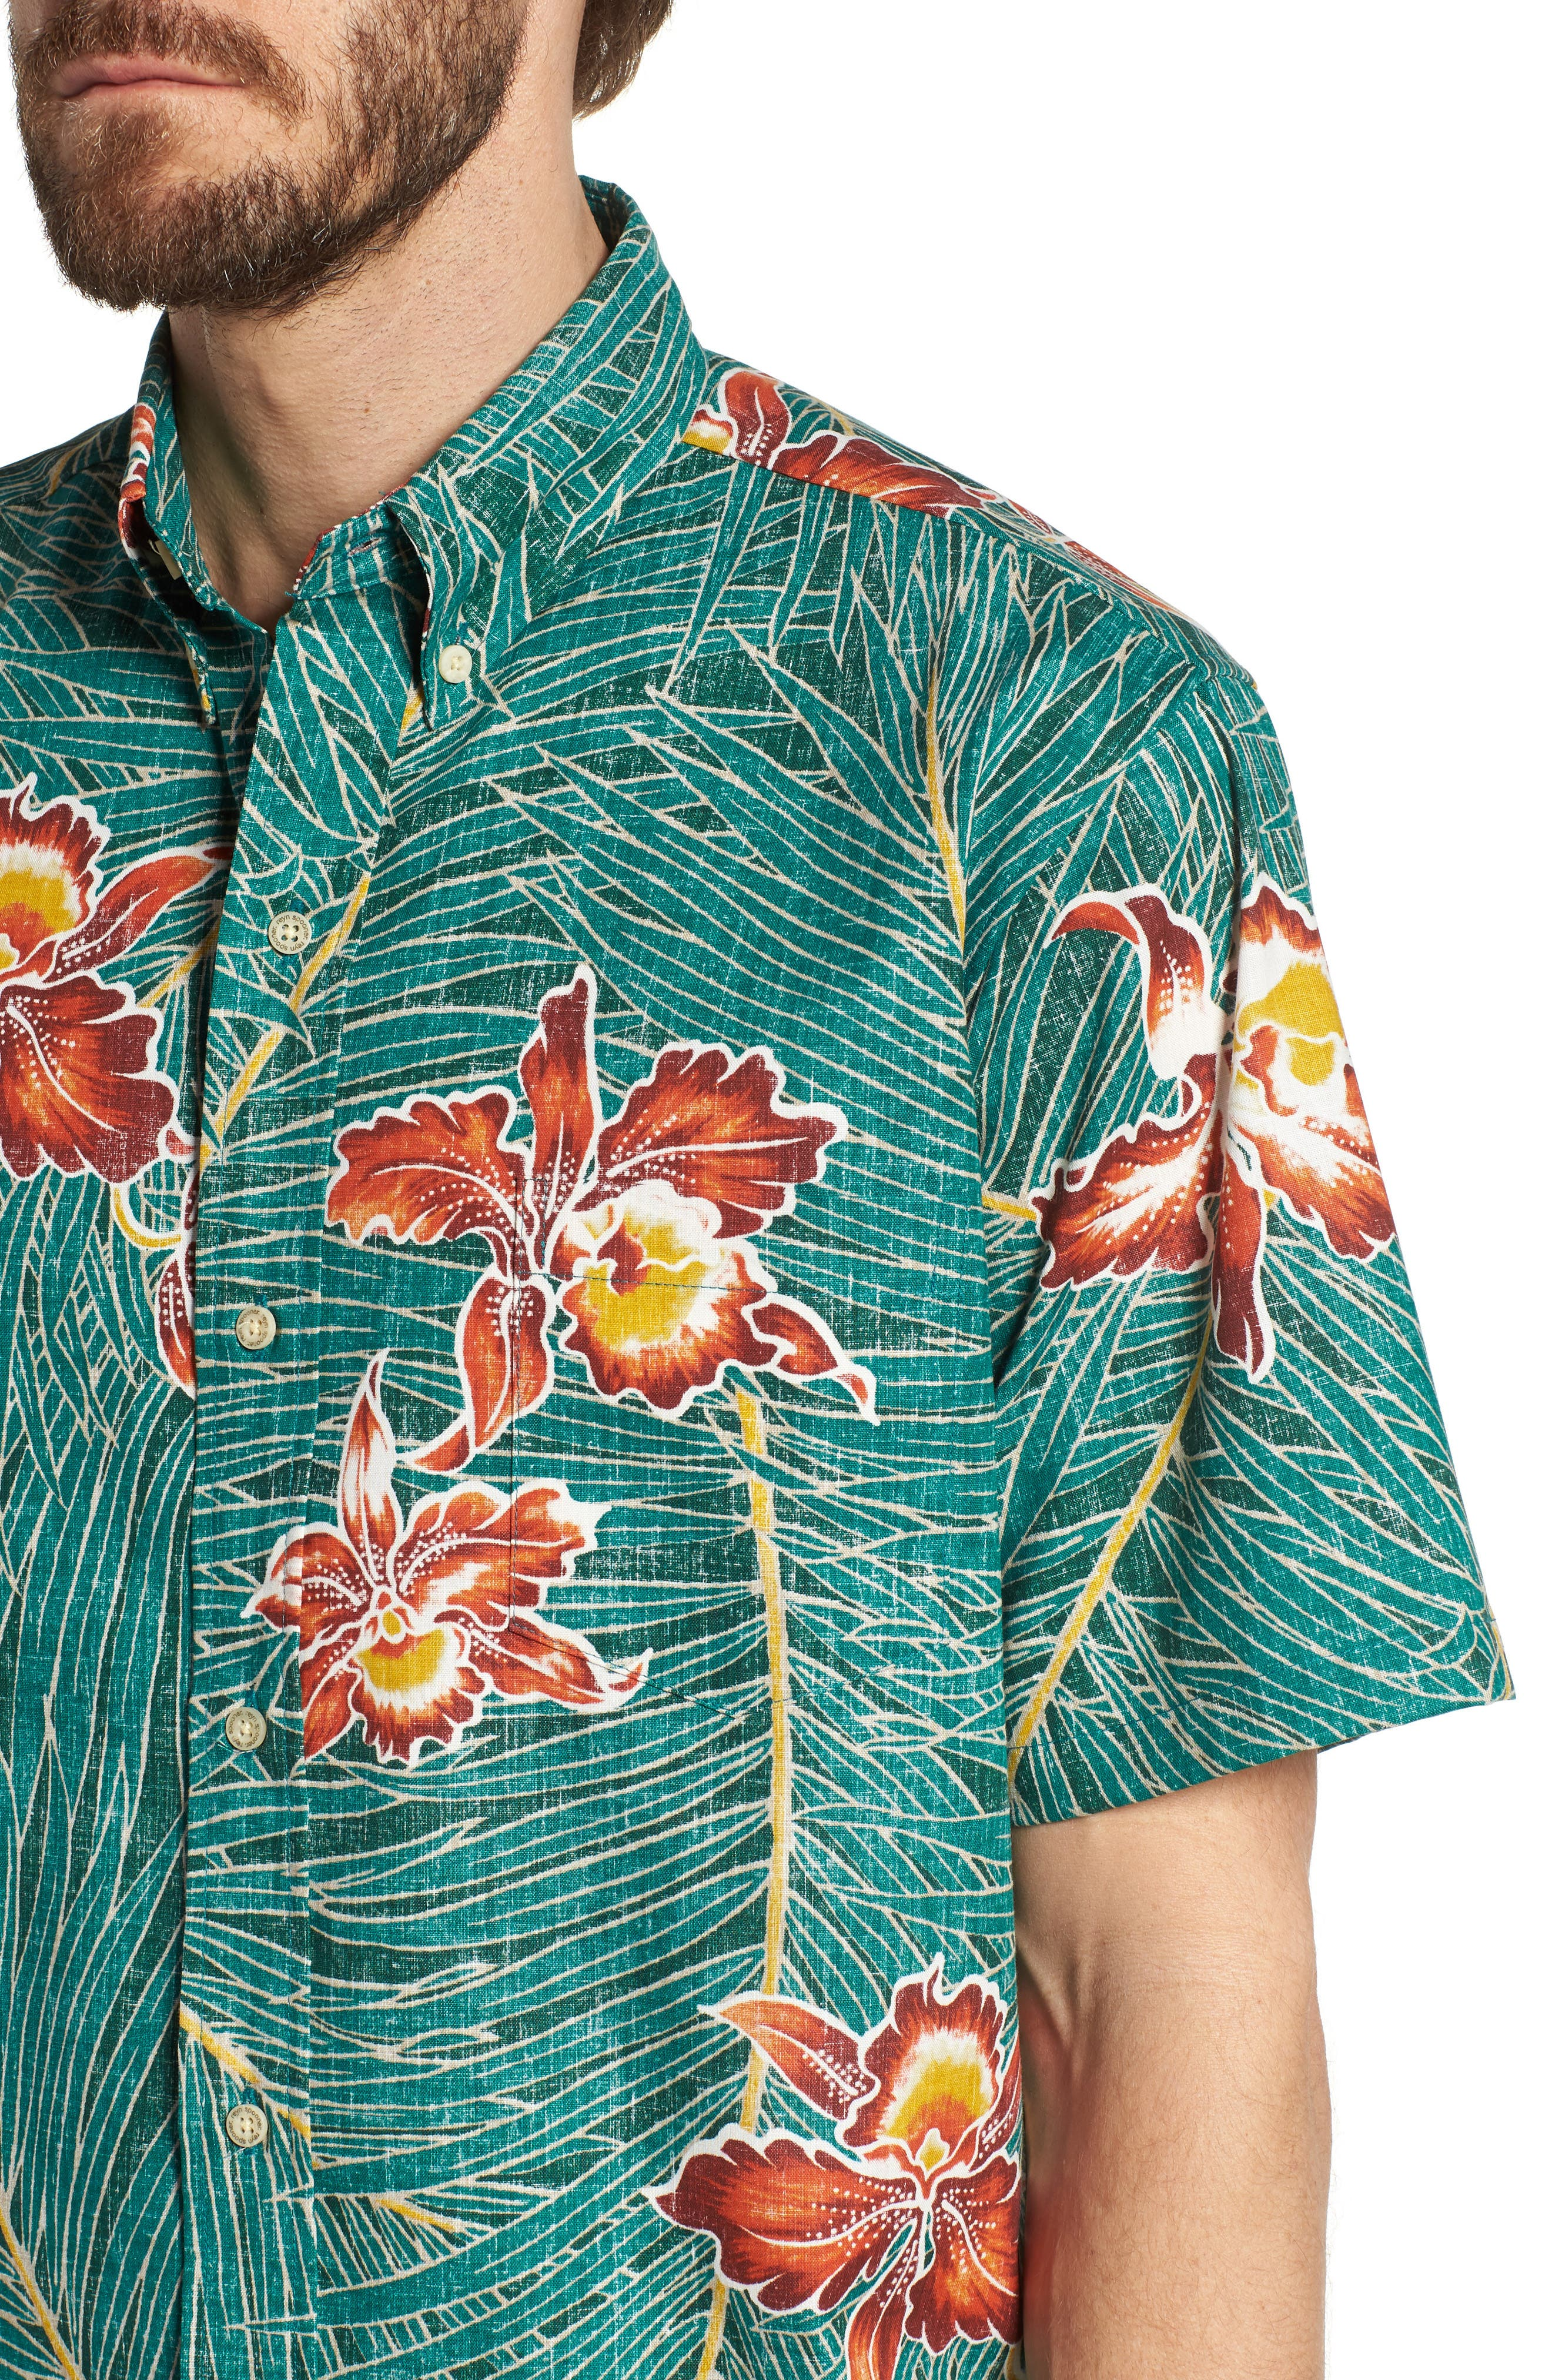 Okika Oasis Traditional Fit Sport Shirt,                             Alternate thumbnail 4, color,                             Emerald